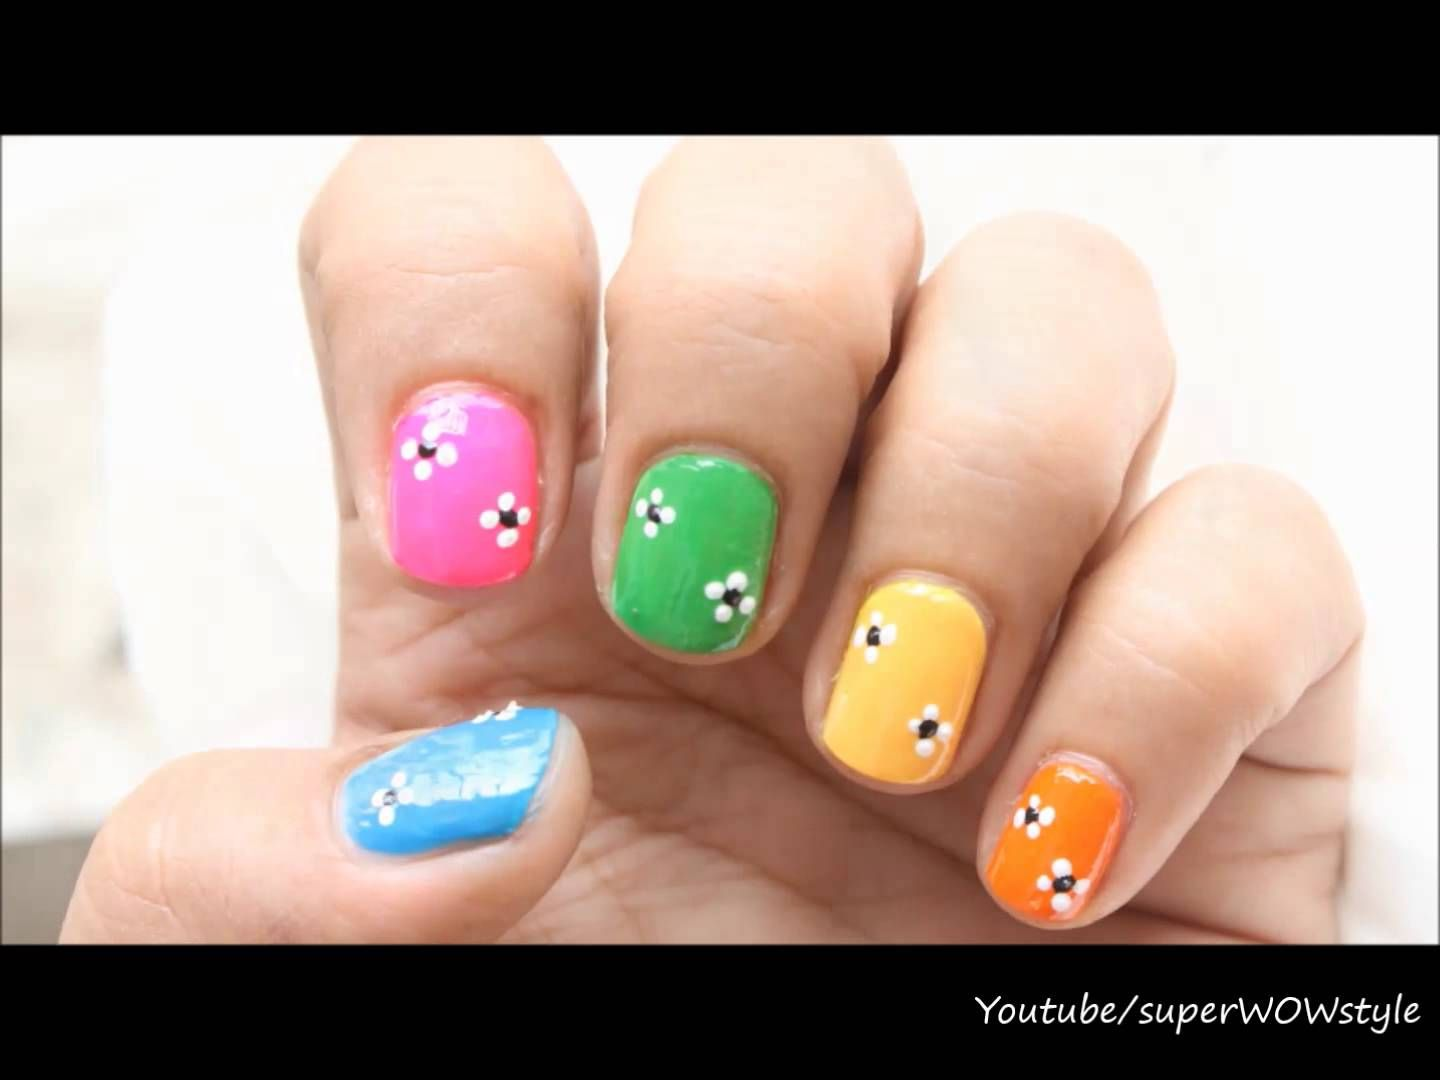 Easy nail designs for kids beginners nail art using toothpick easy nail designs for kids beginners nail art using toothpick prinsesfo Gallery